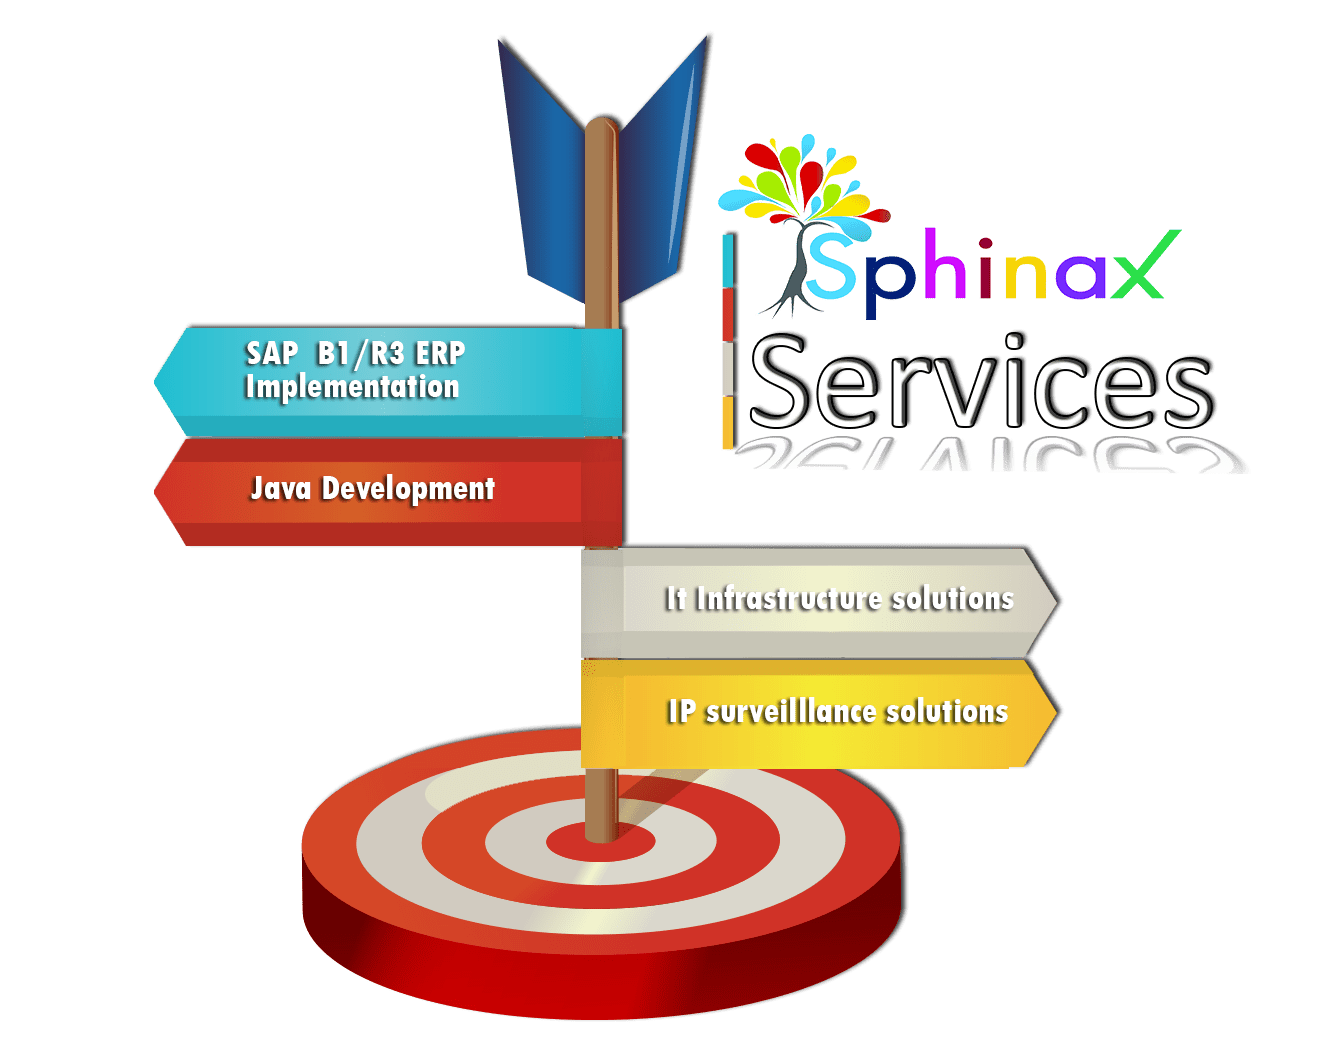 Sphinax Services